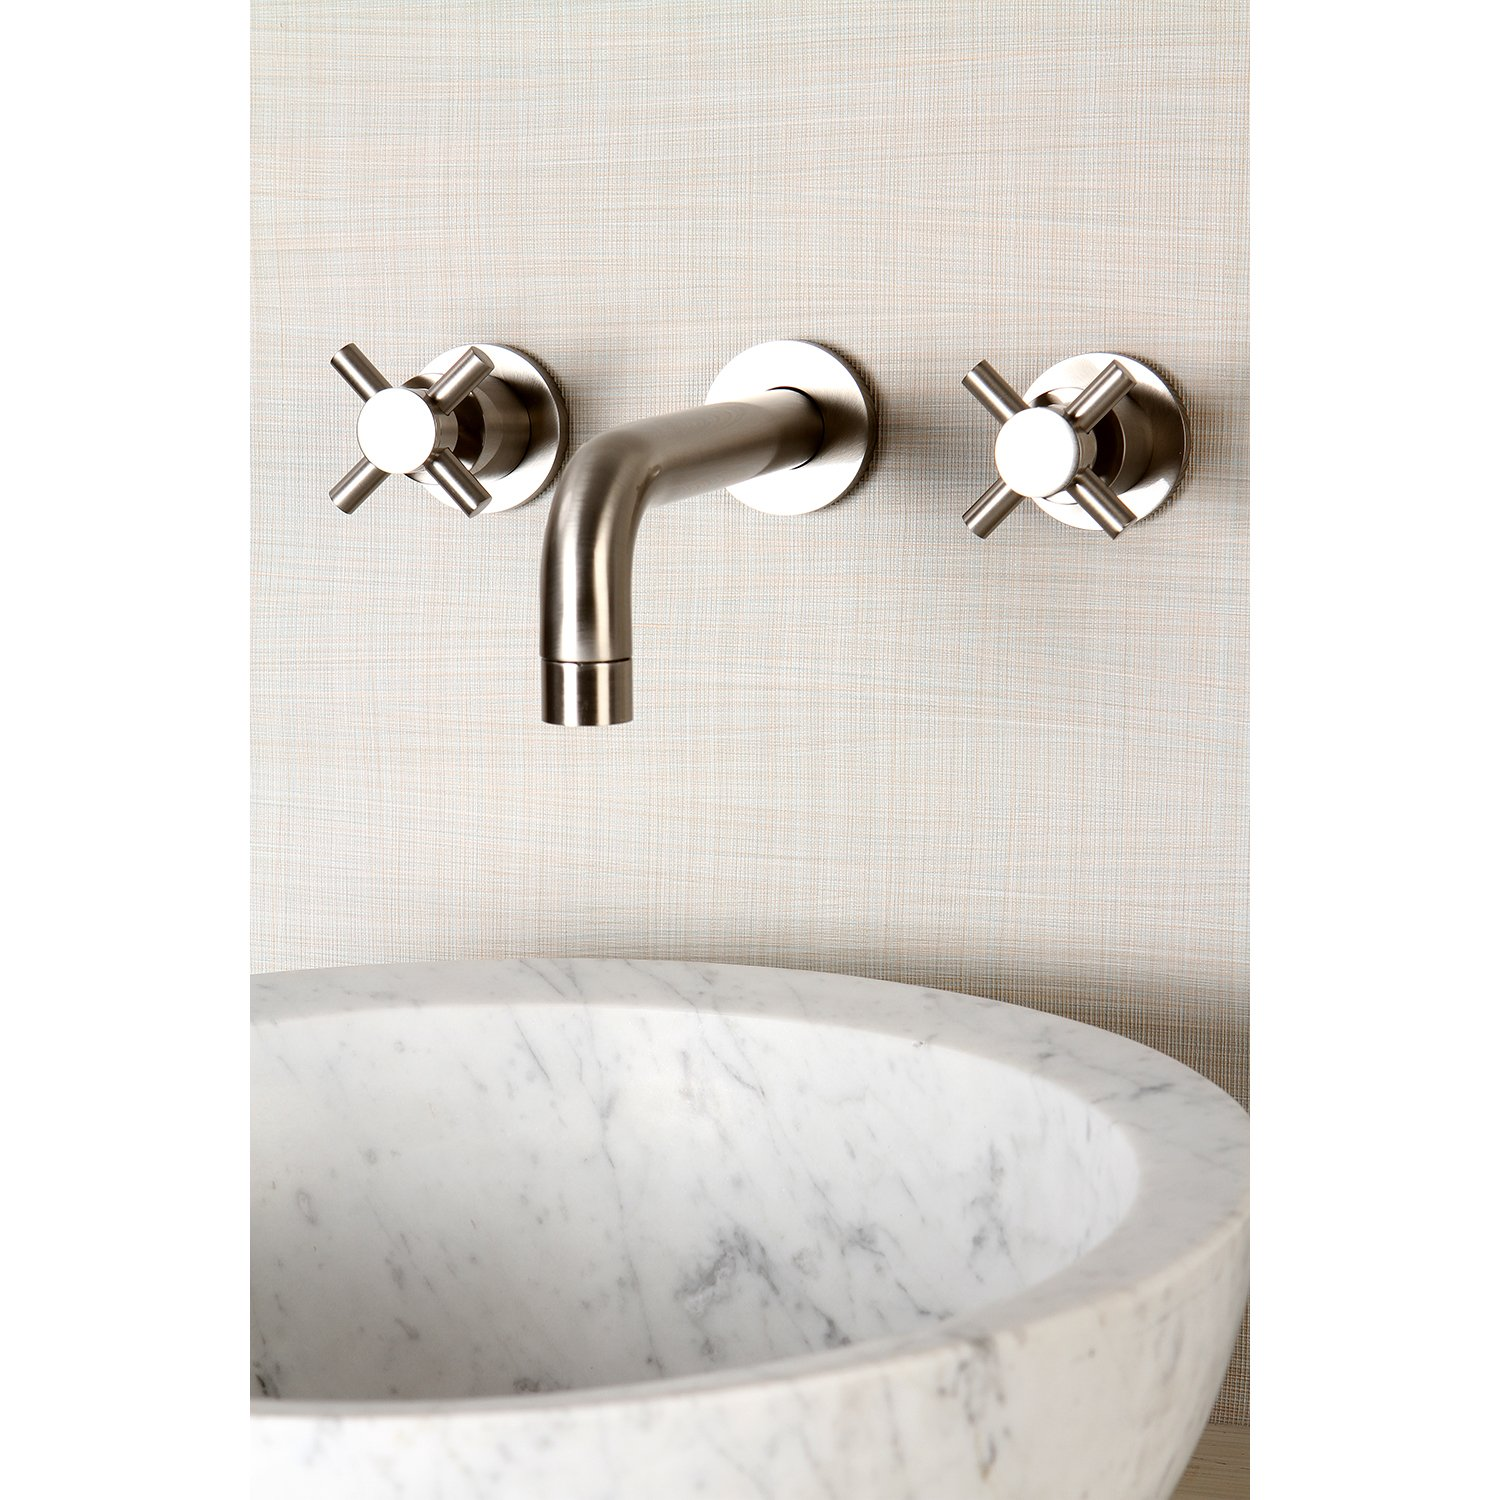 Kingston Brass Ks8128dl Concord Wall Mount Twin Lever Handle Sink Faucet Water Supply Shutoff Valve Diagram Aaa Service Plumbing Satin Nickel Touch On Bathroom Faucets